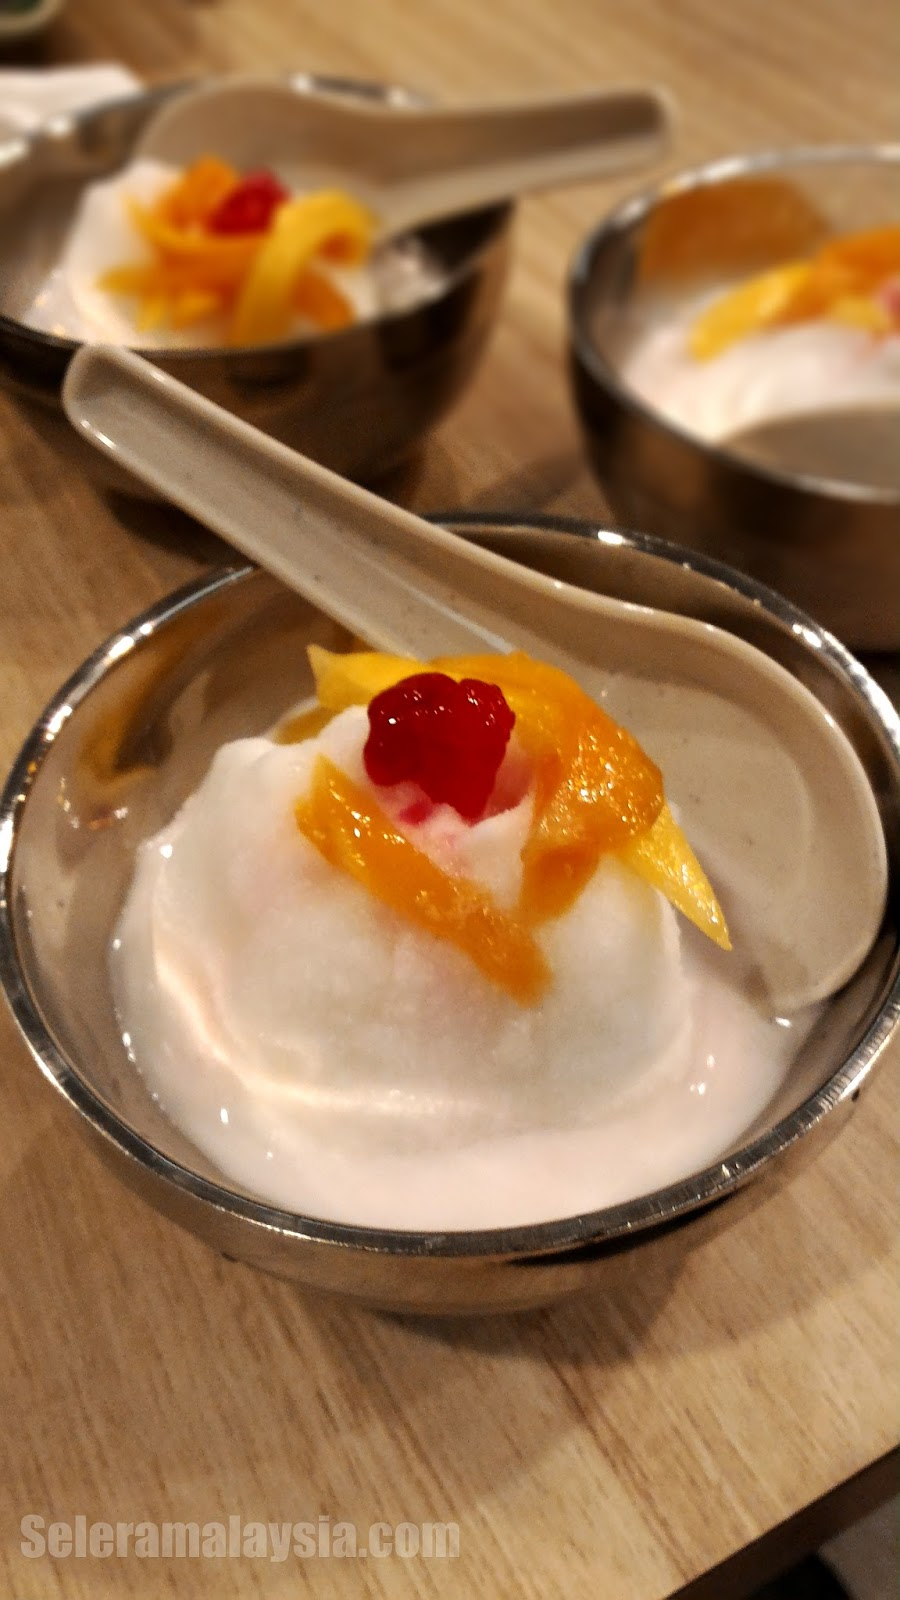 Thai Red Ruby Water Chestnut with Coconut Cream and Jackfruit